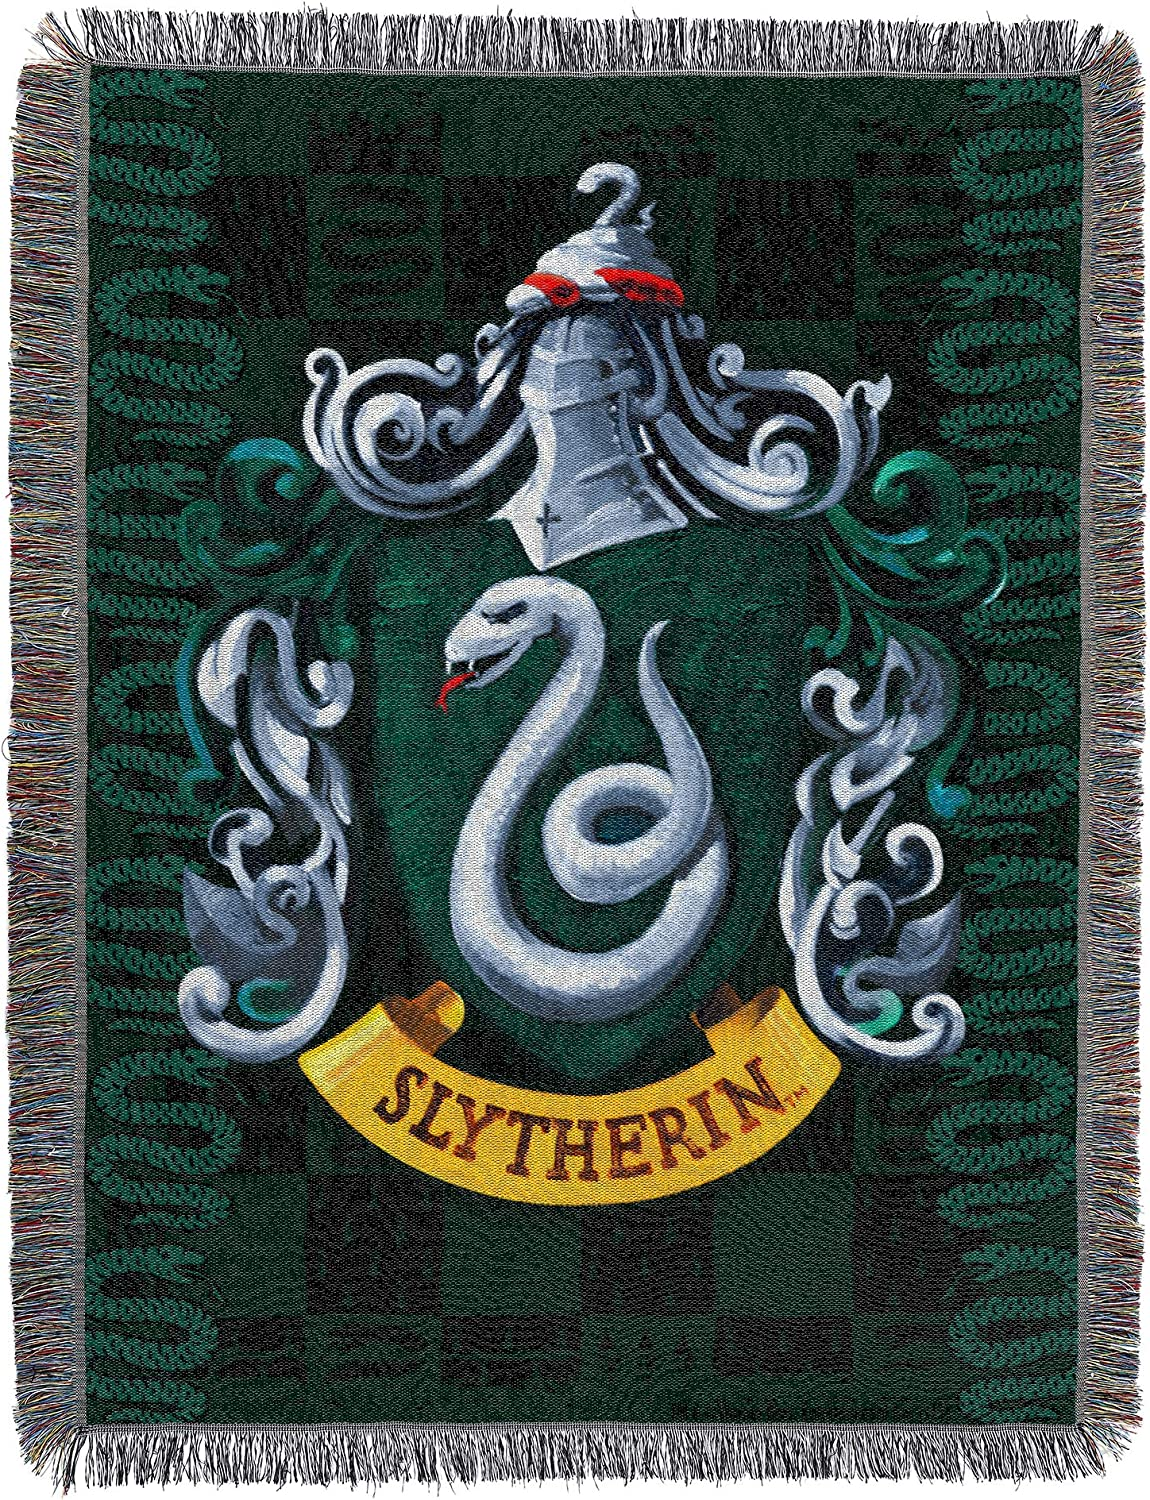 Harry Potter Slytherin House New Woven Throw Blanket Gift Malfoy Shield Crest